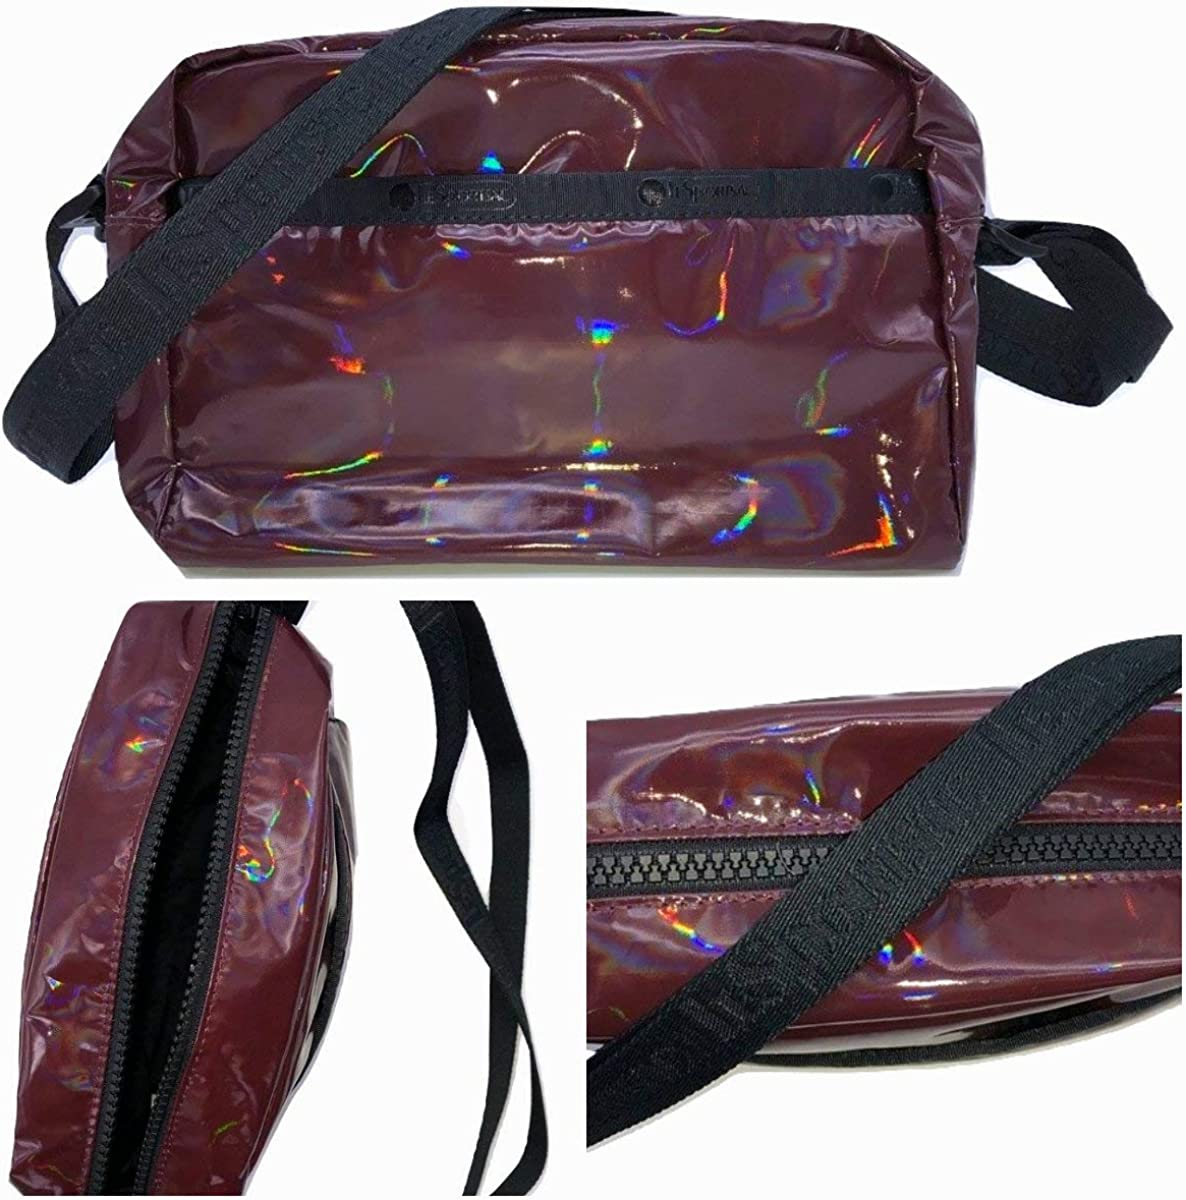 LeSportsac Polaris Dawn Daniella Crossbody Handbag, Style 2434/Color F434, Merlot/Burgundy Iridescent Patent Specialty Material, LeSportsac Logo Strap/Trim, Wide Black Zipper Detail